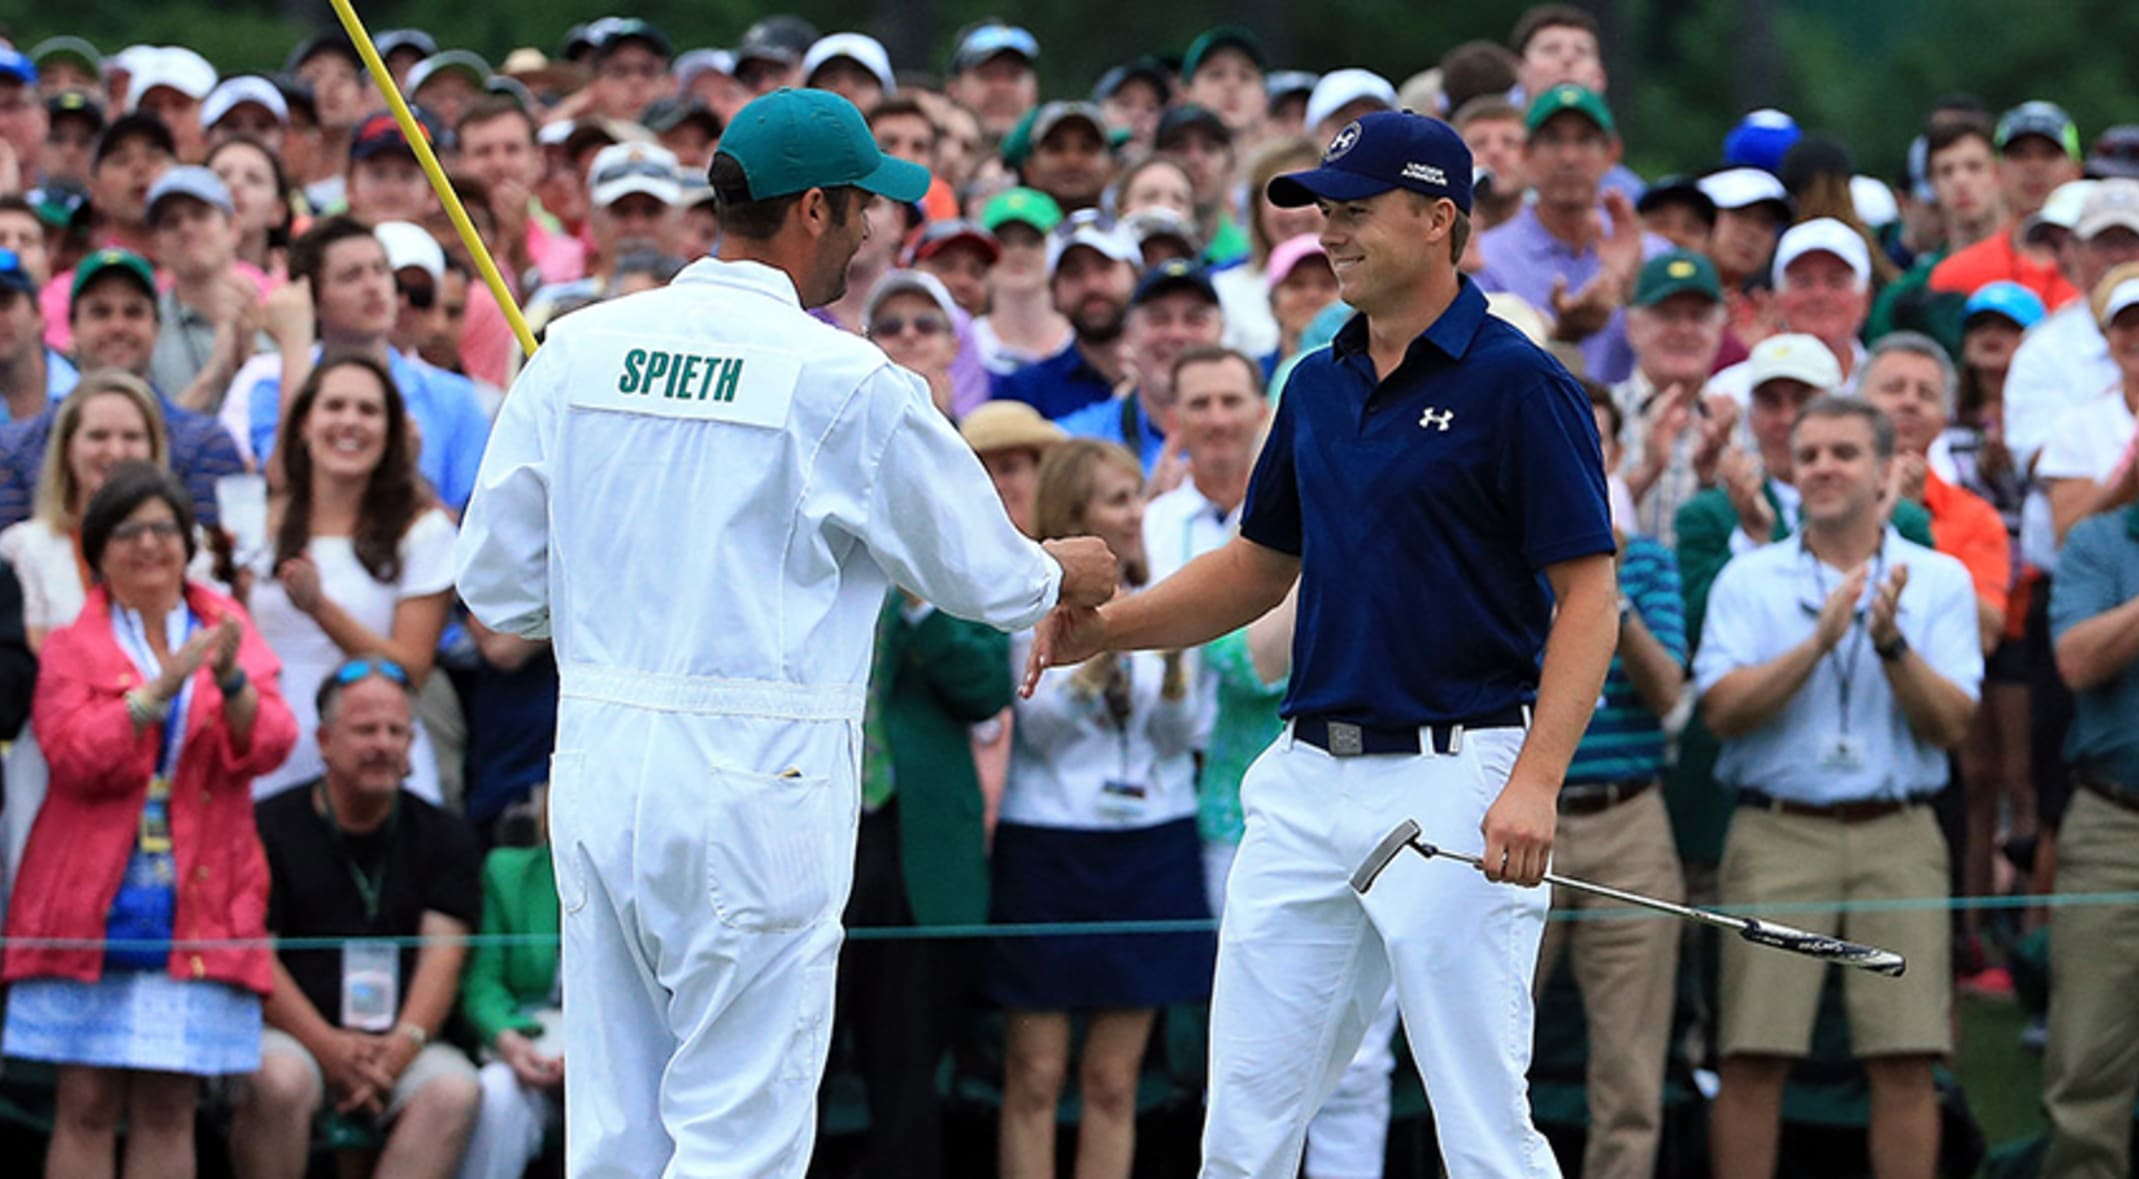 f9b8046af03 Jordan Spieth has either won or finished runner-up in his last four starts  on